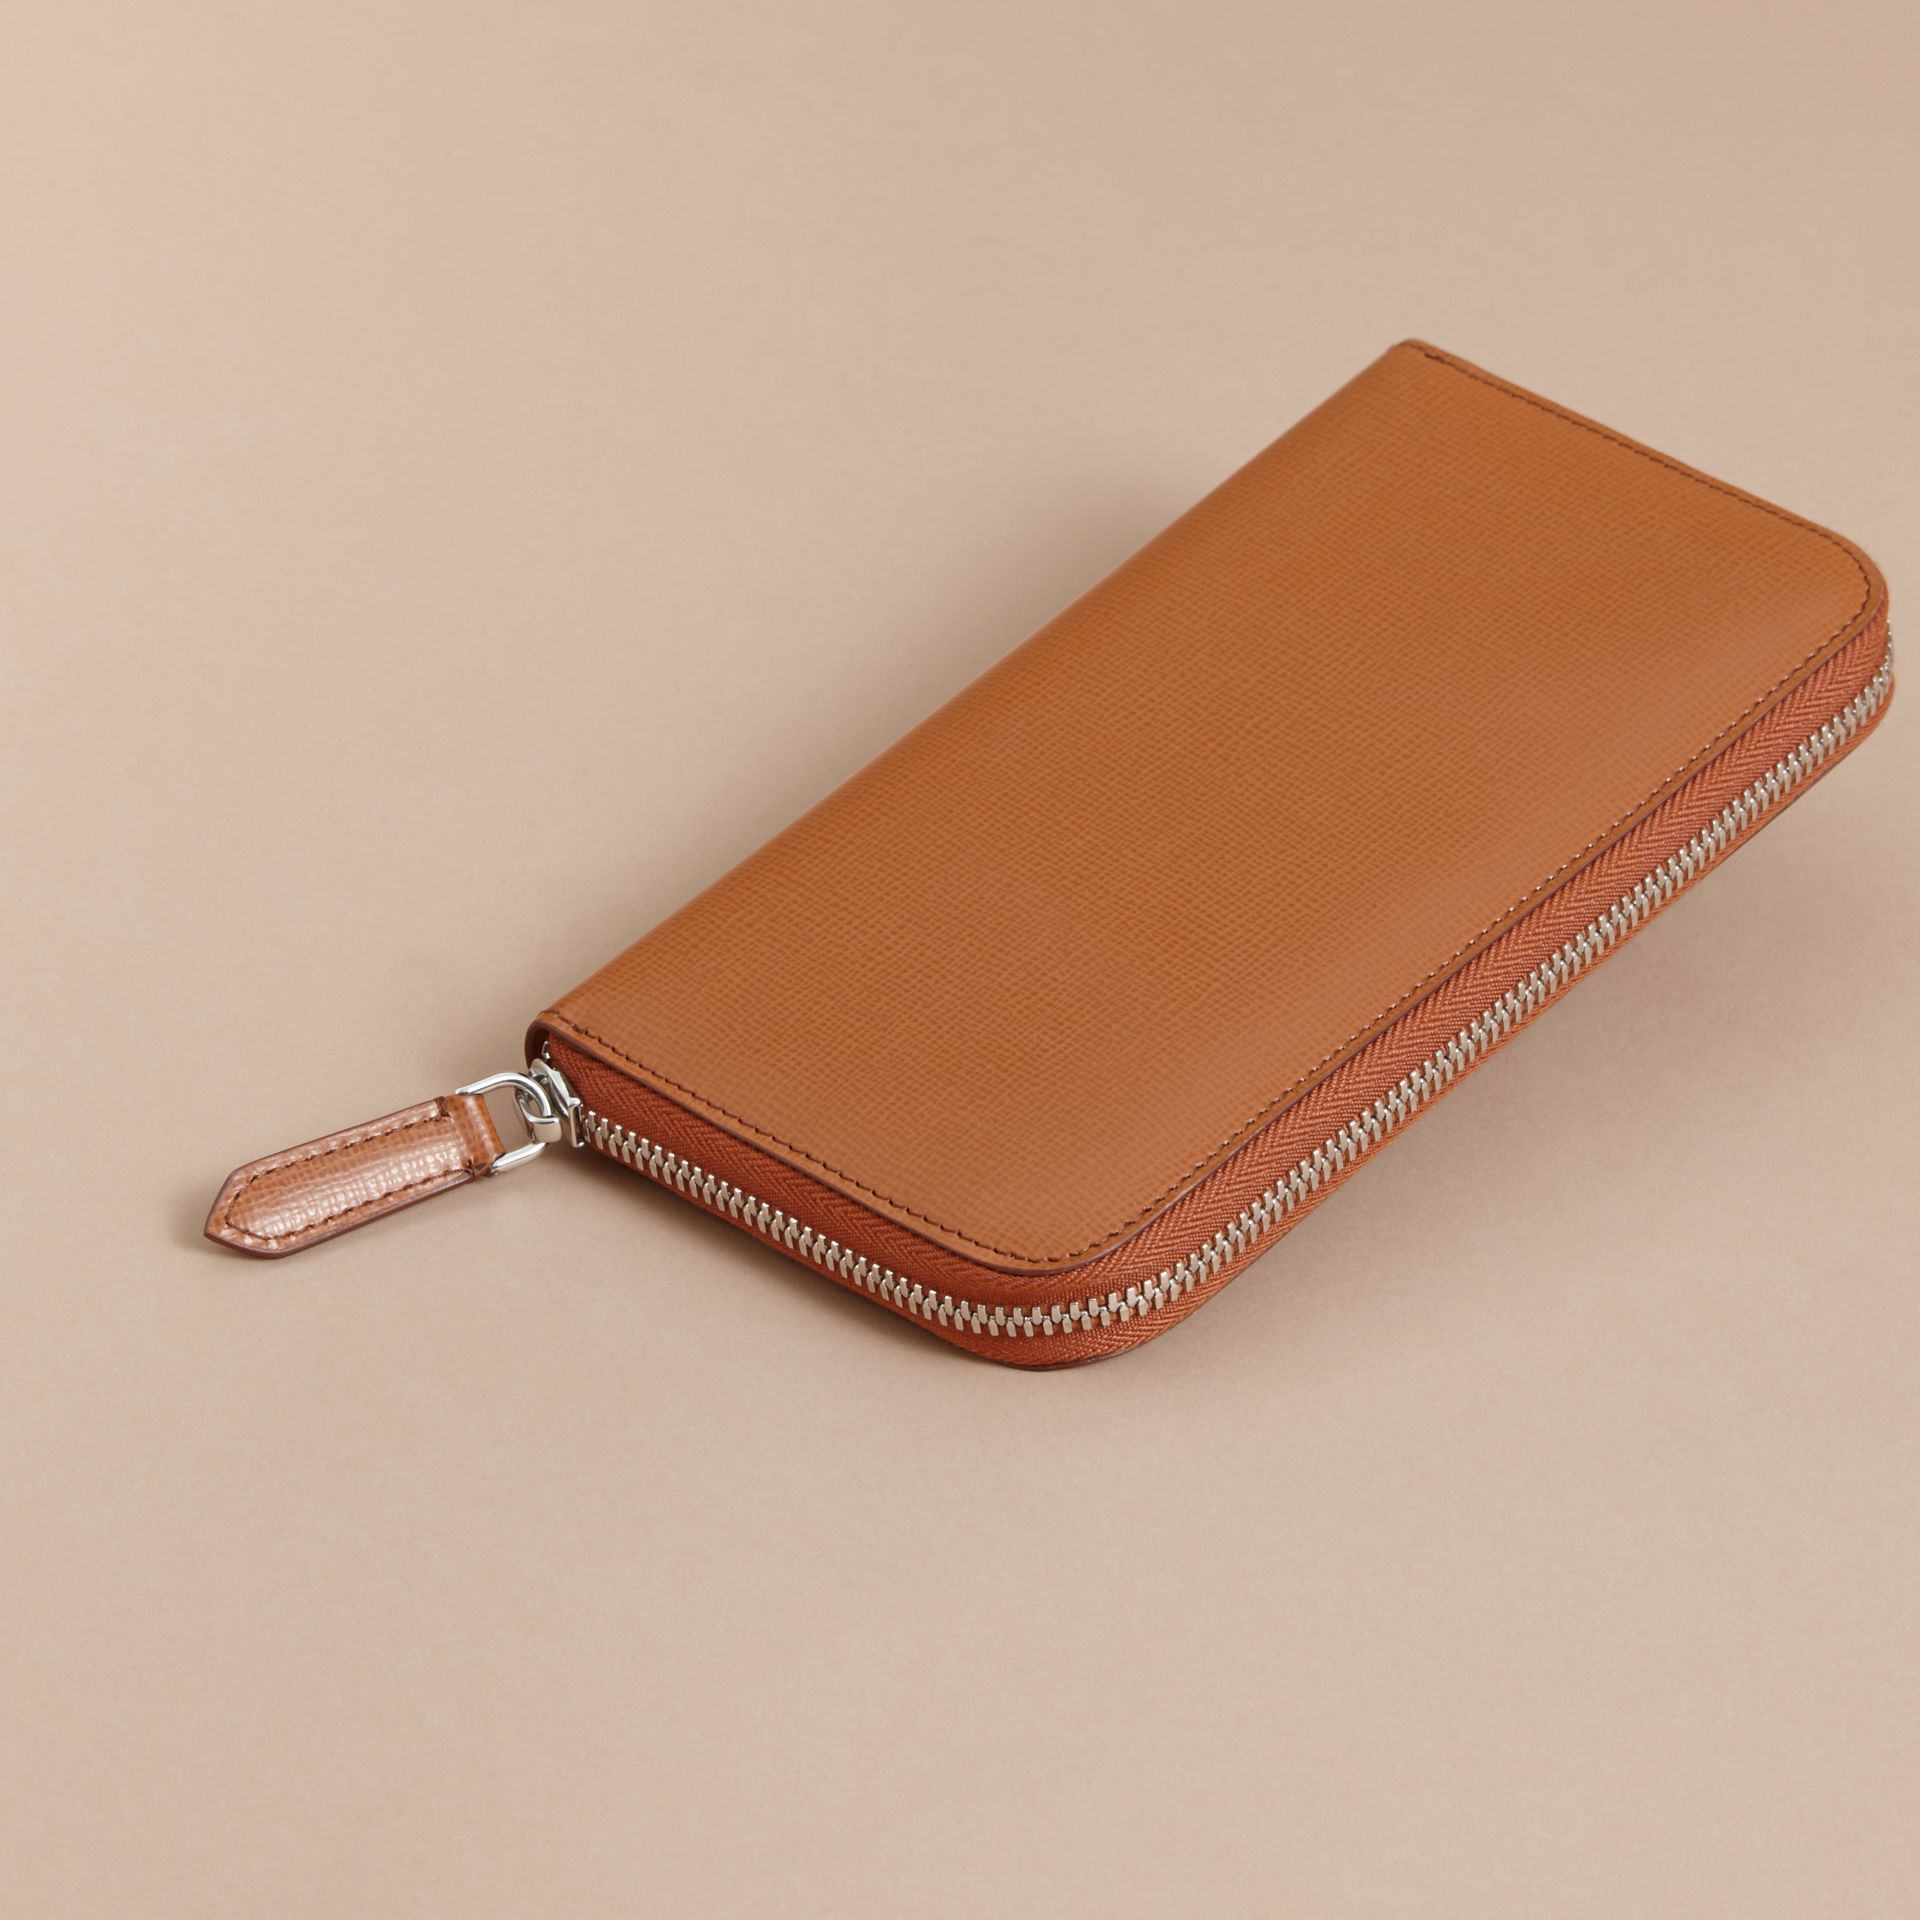 London Leather Ziparound Wallet Tan - gallery image 4